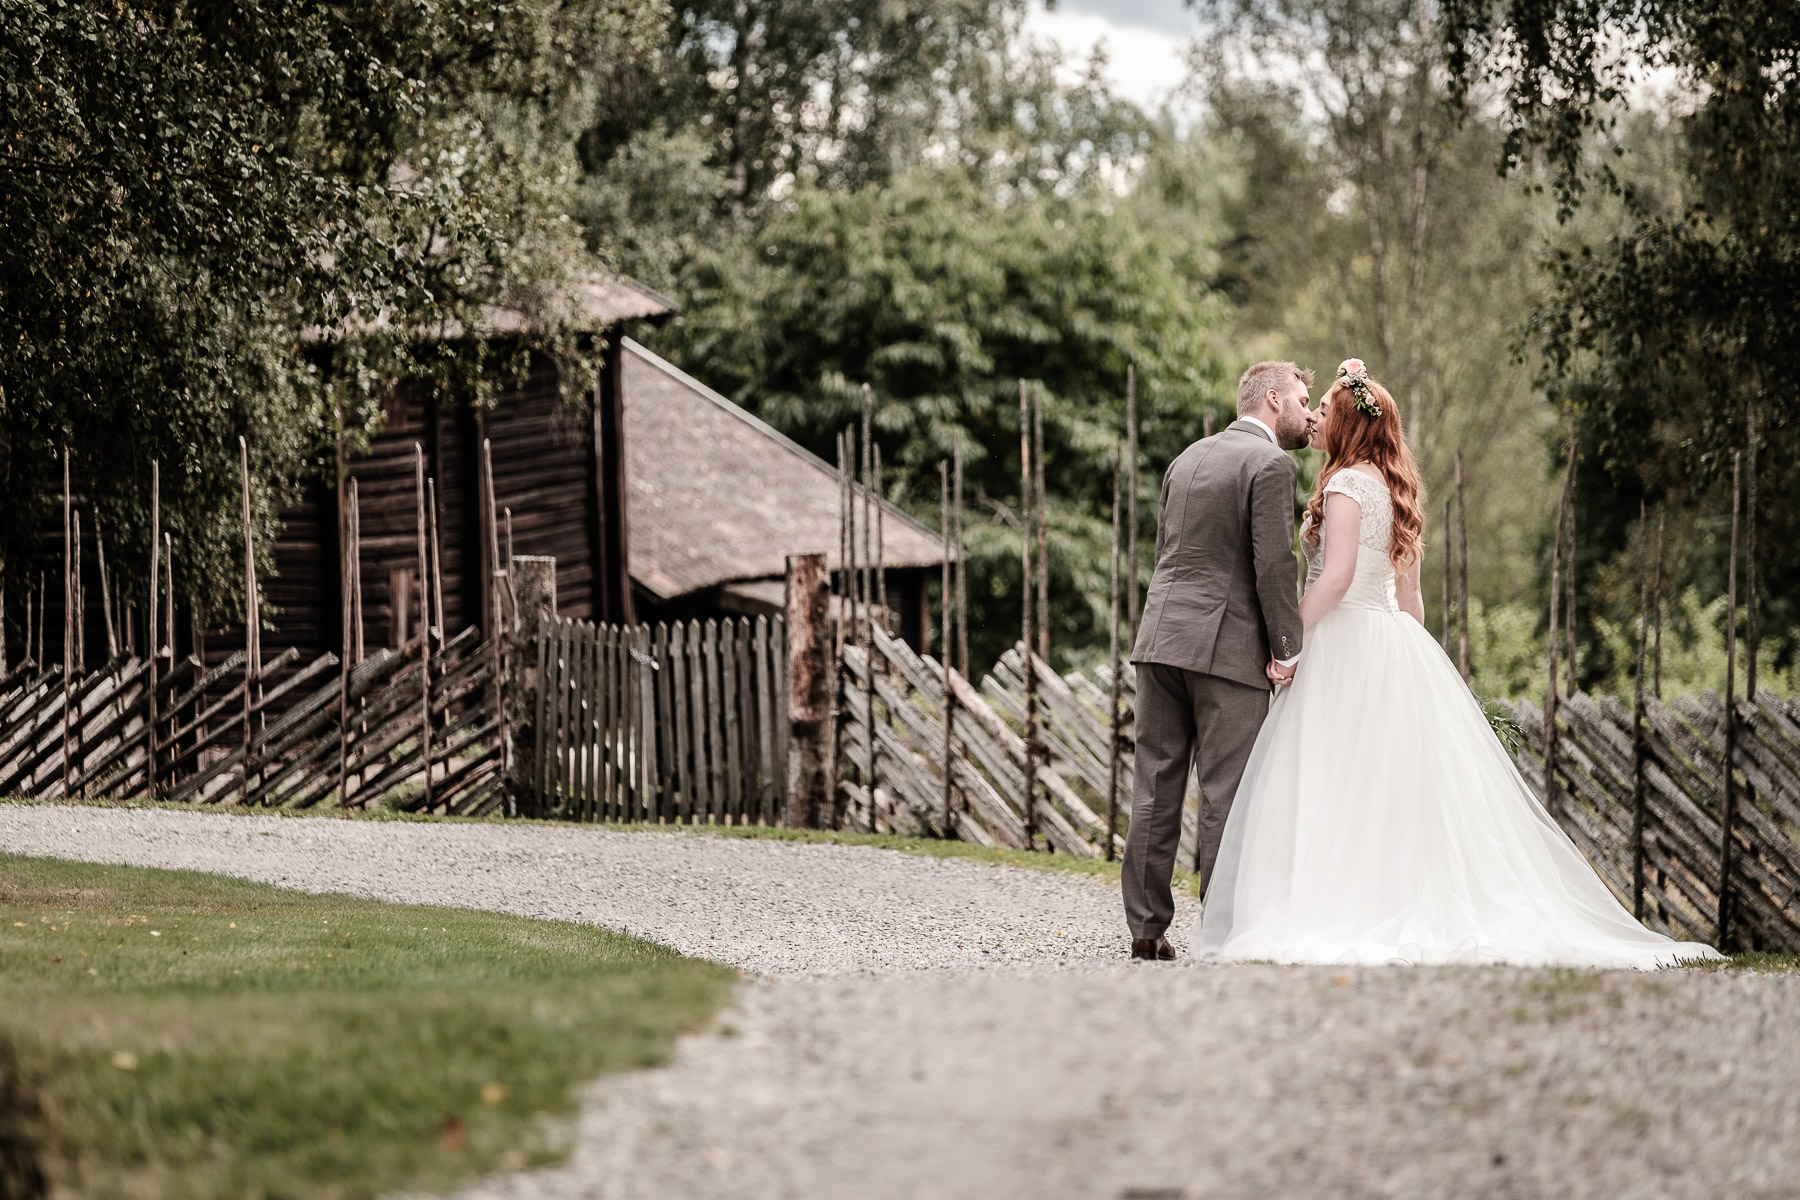 Click to enlarge image elise-christoffer-eidsvoll-ottossonphoto-1032.jpg